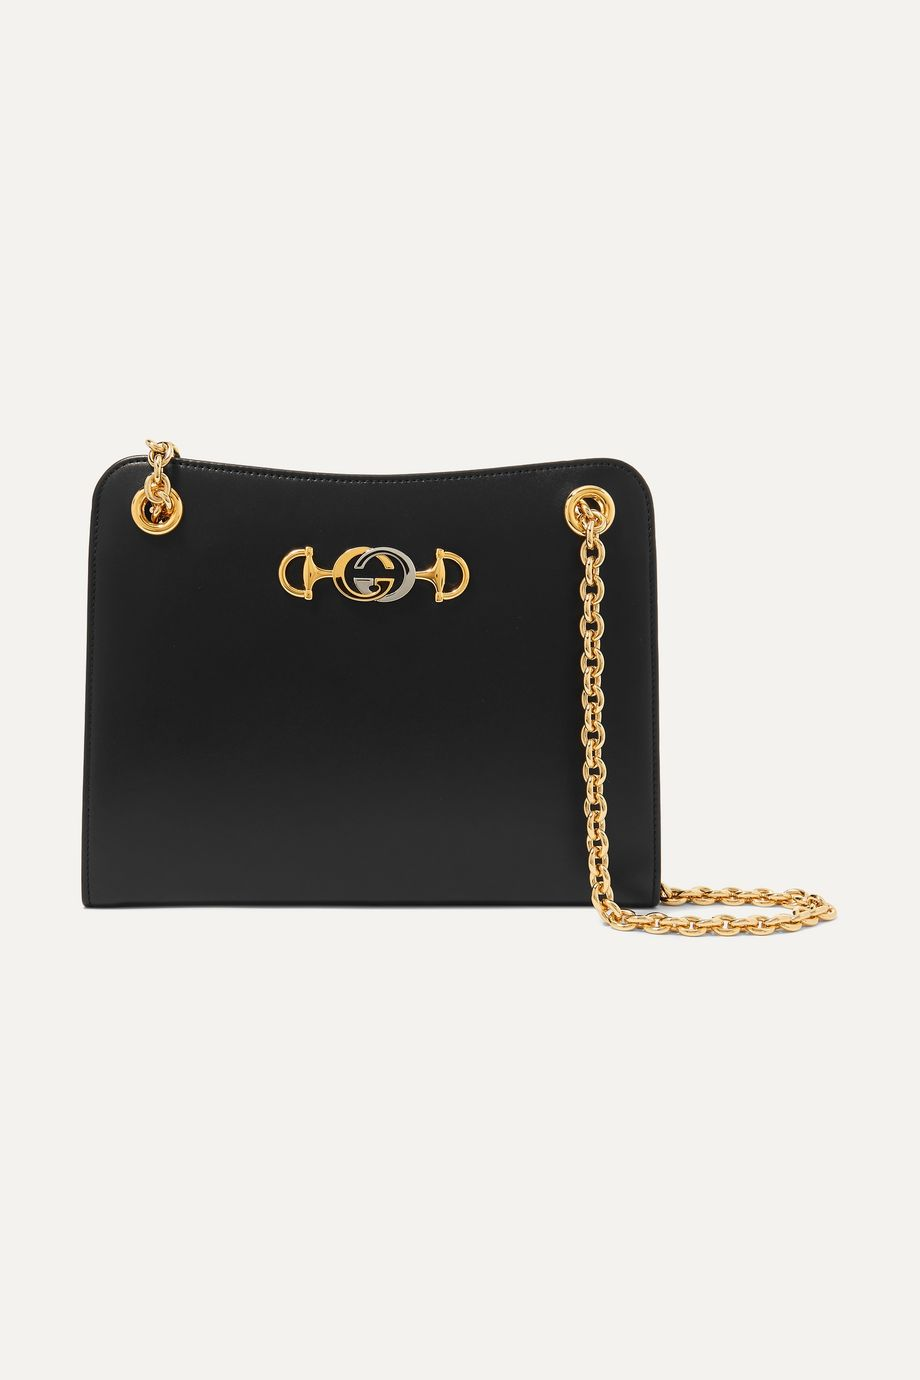 Gucci Zumi embellished leather shoulder bag